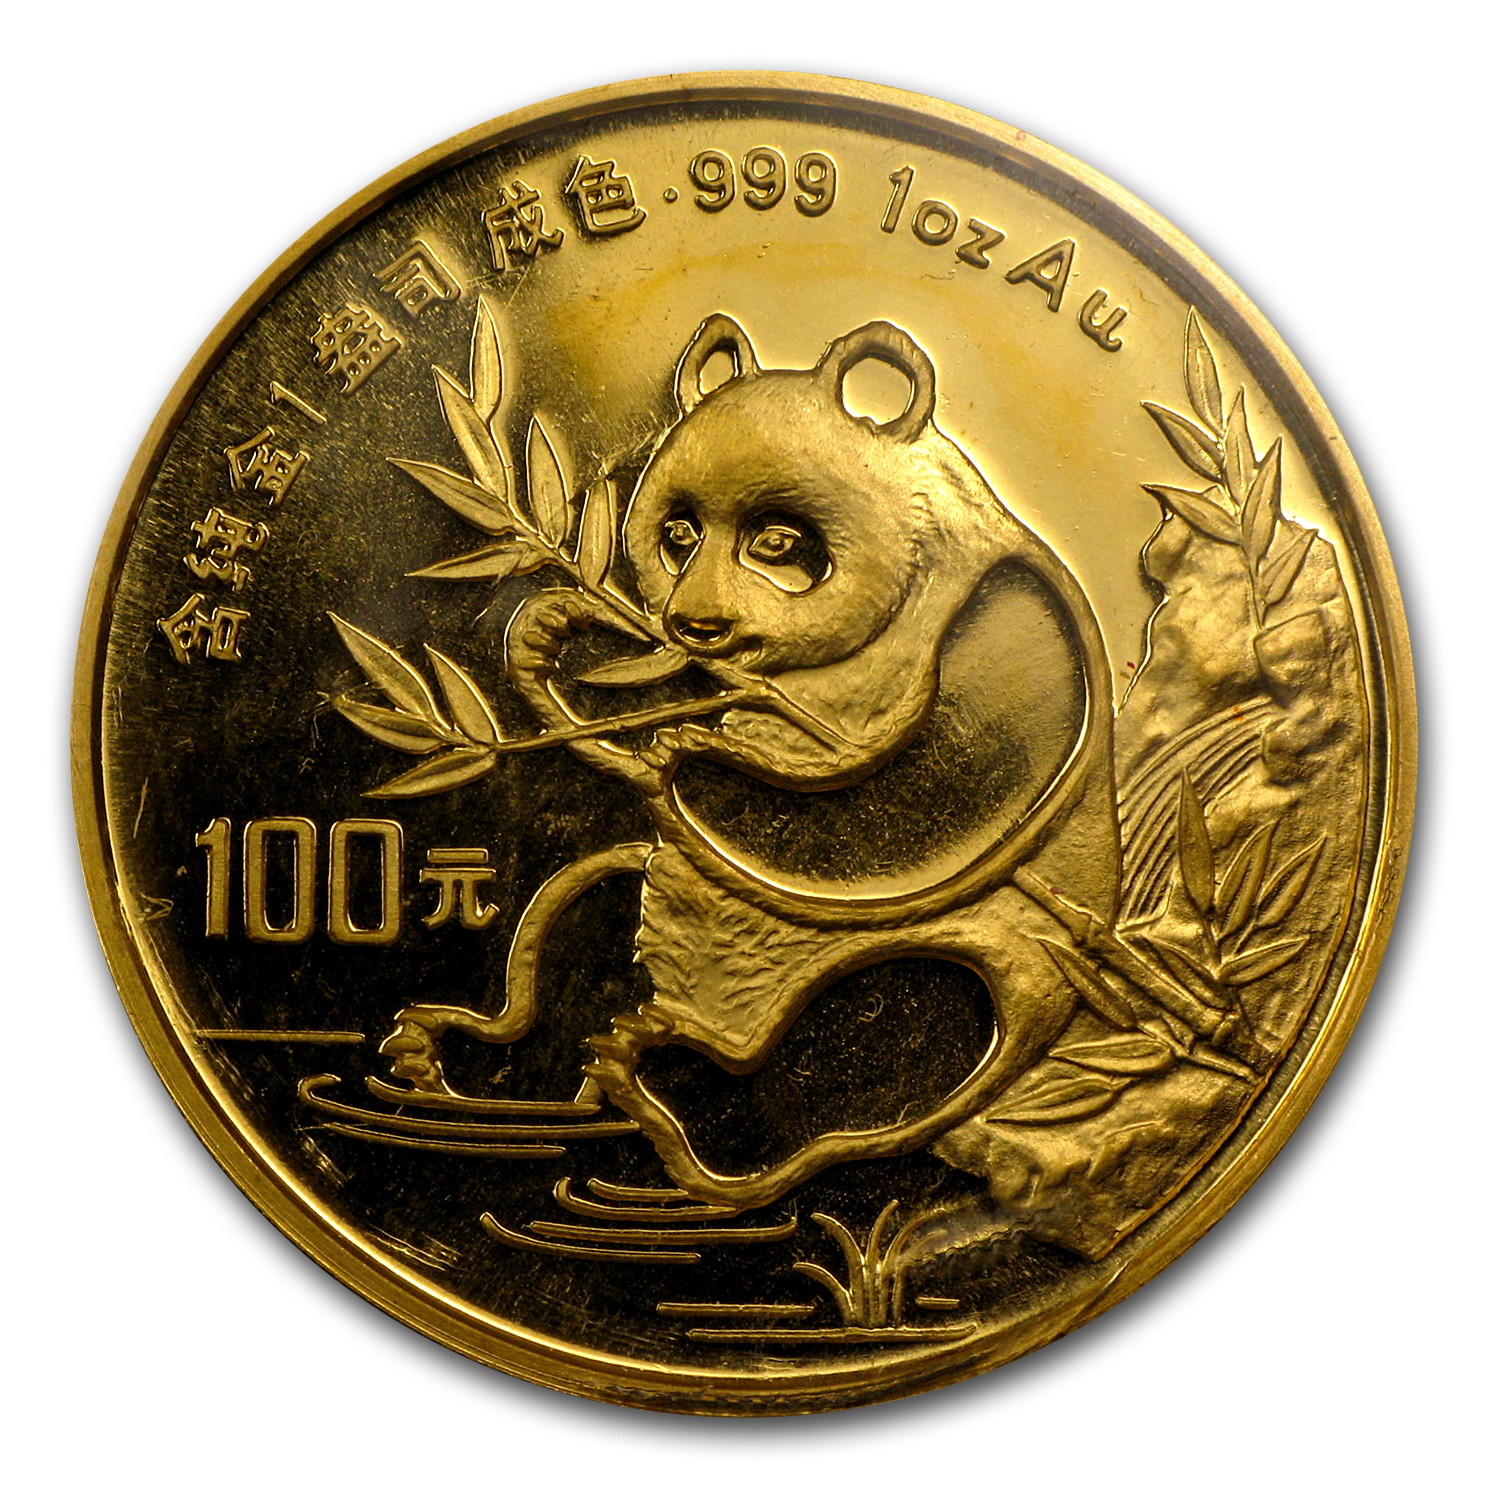 1991 1 oz Gold Chinese Panda - Large Date (Sealed)